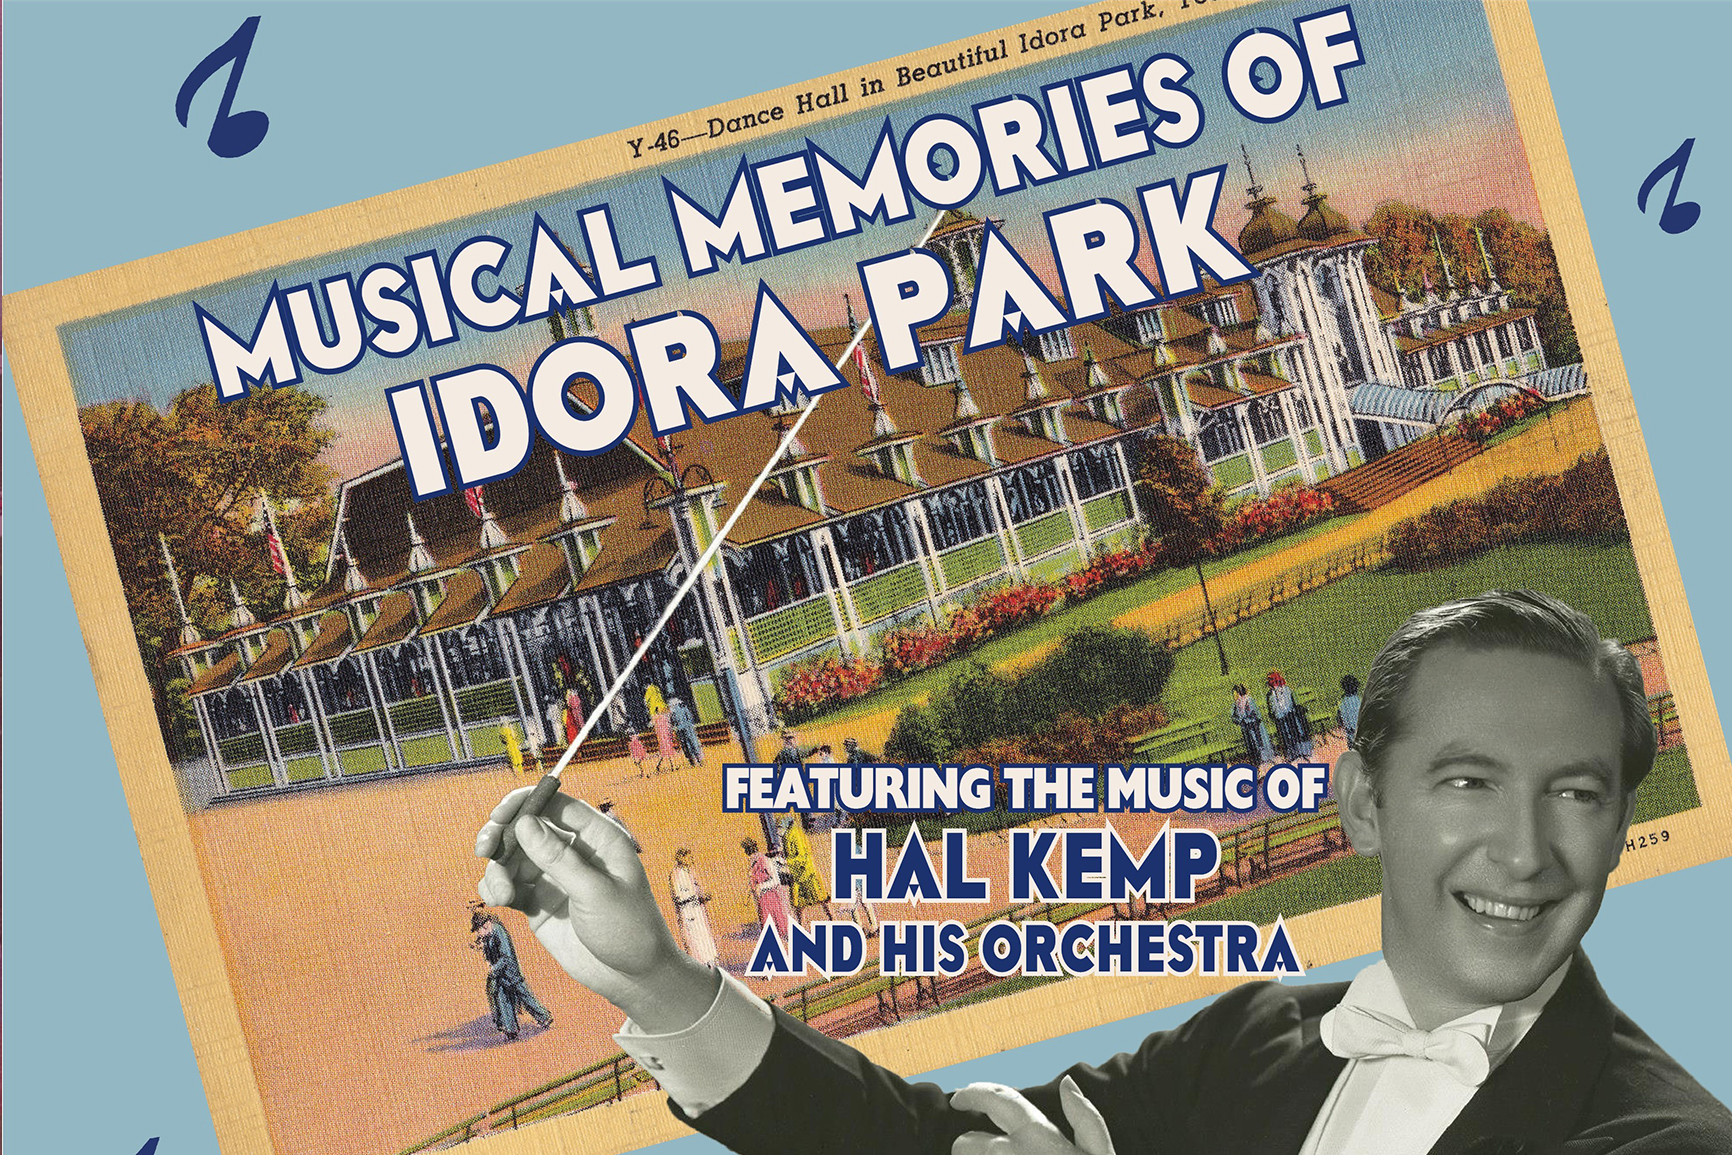 Musical Memories of Idora Park